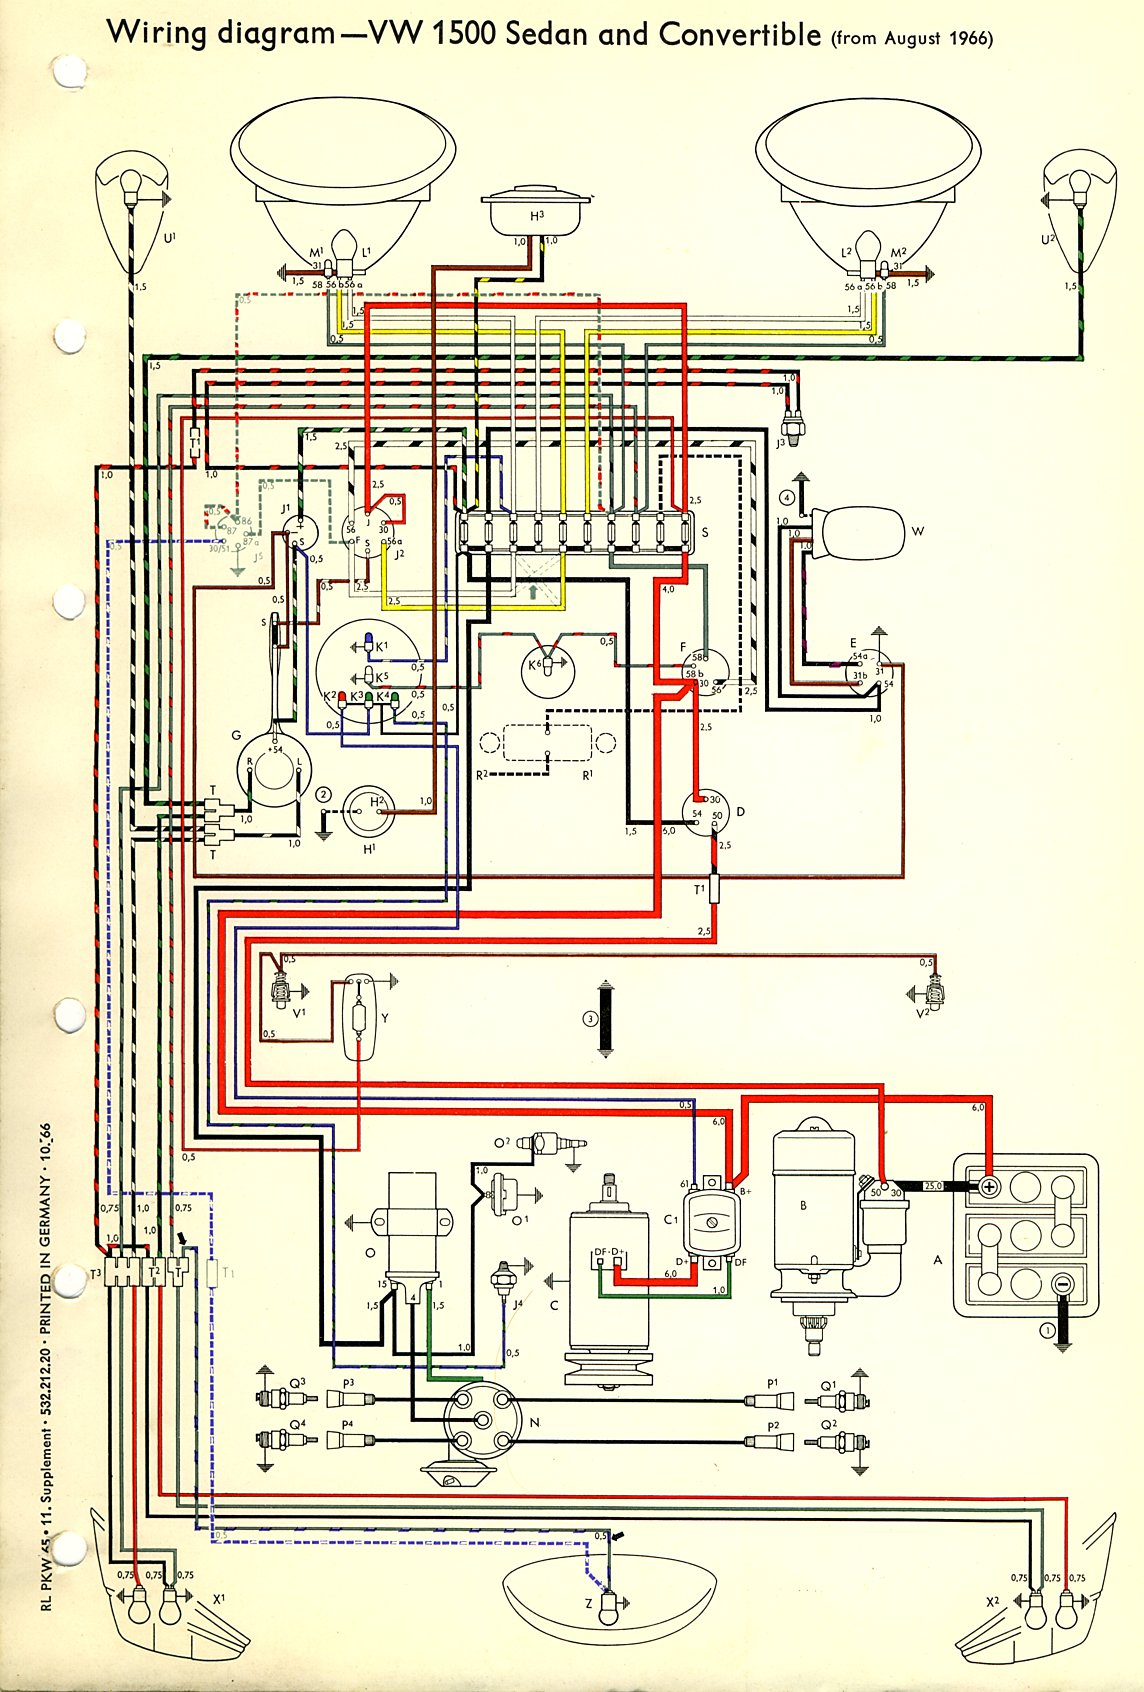 thesamba com type 1 wiring diagrams rh thesamba com vw wiring diagram beetle vw wiring diagram beetle